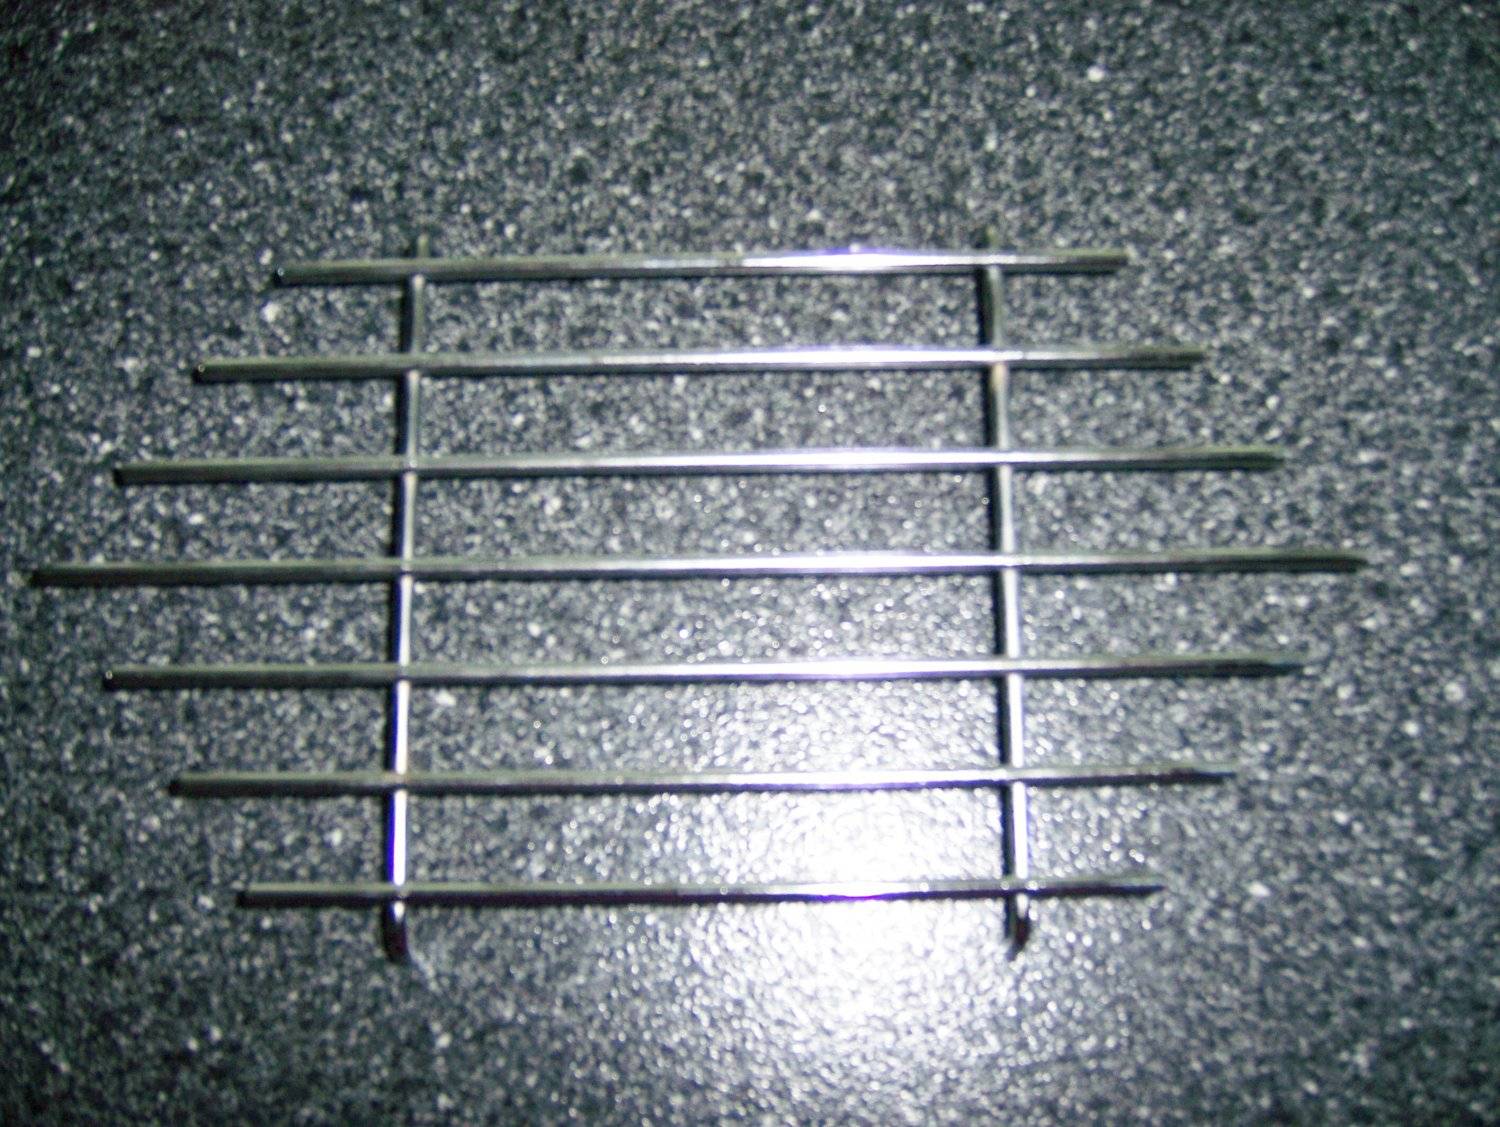 Grill Insert Plate 6x9 Tapered BNK635